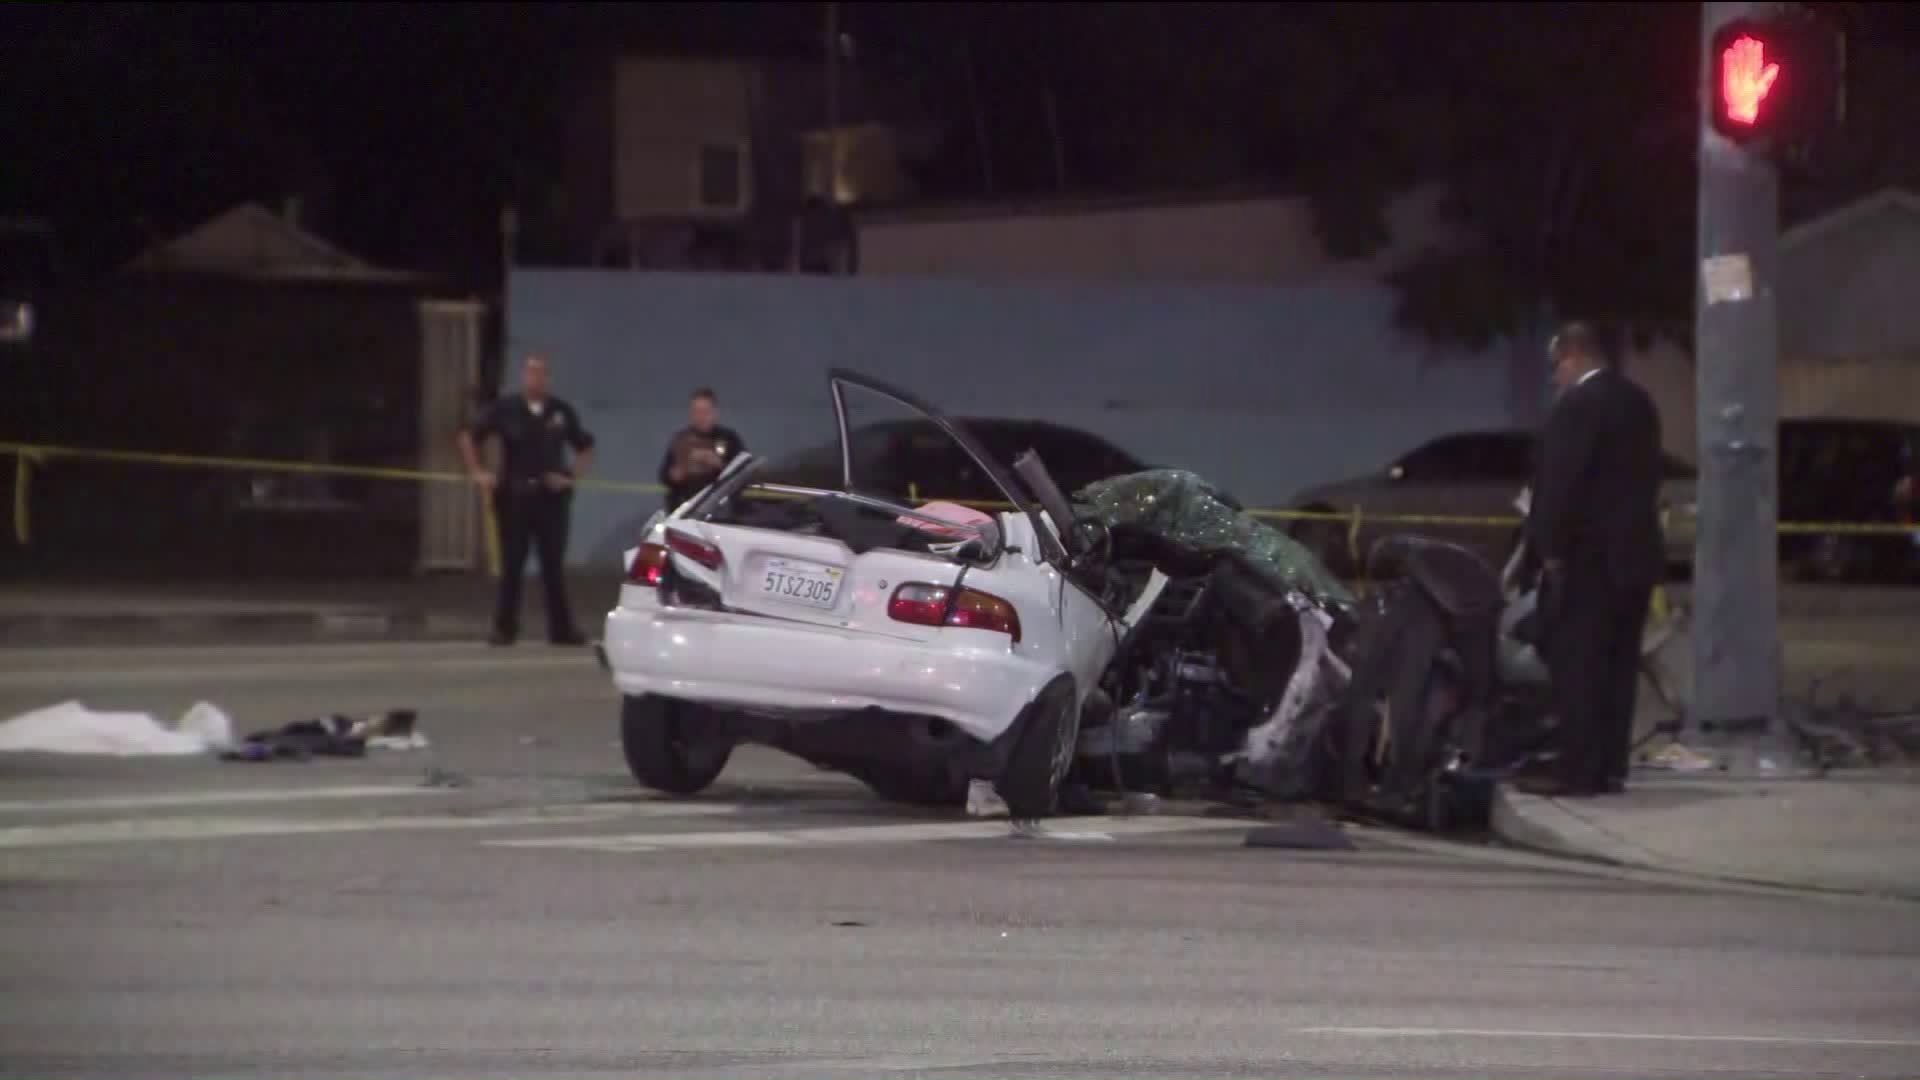 Officers respond to the scene of a collision near Highland Park on July 25, 2019. (Credit: KTLA)